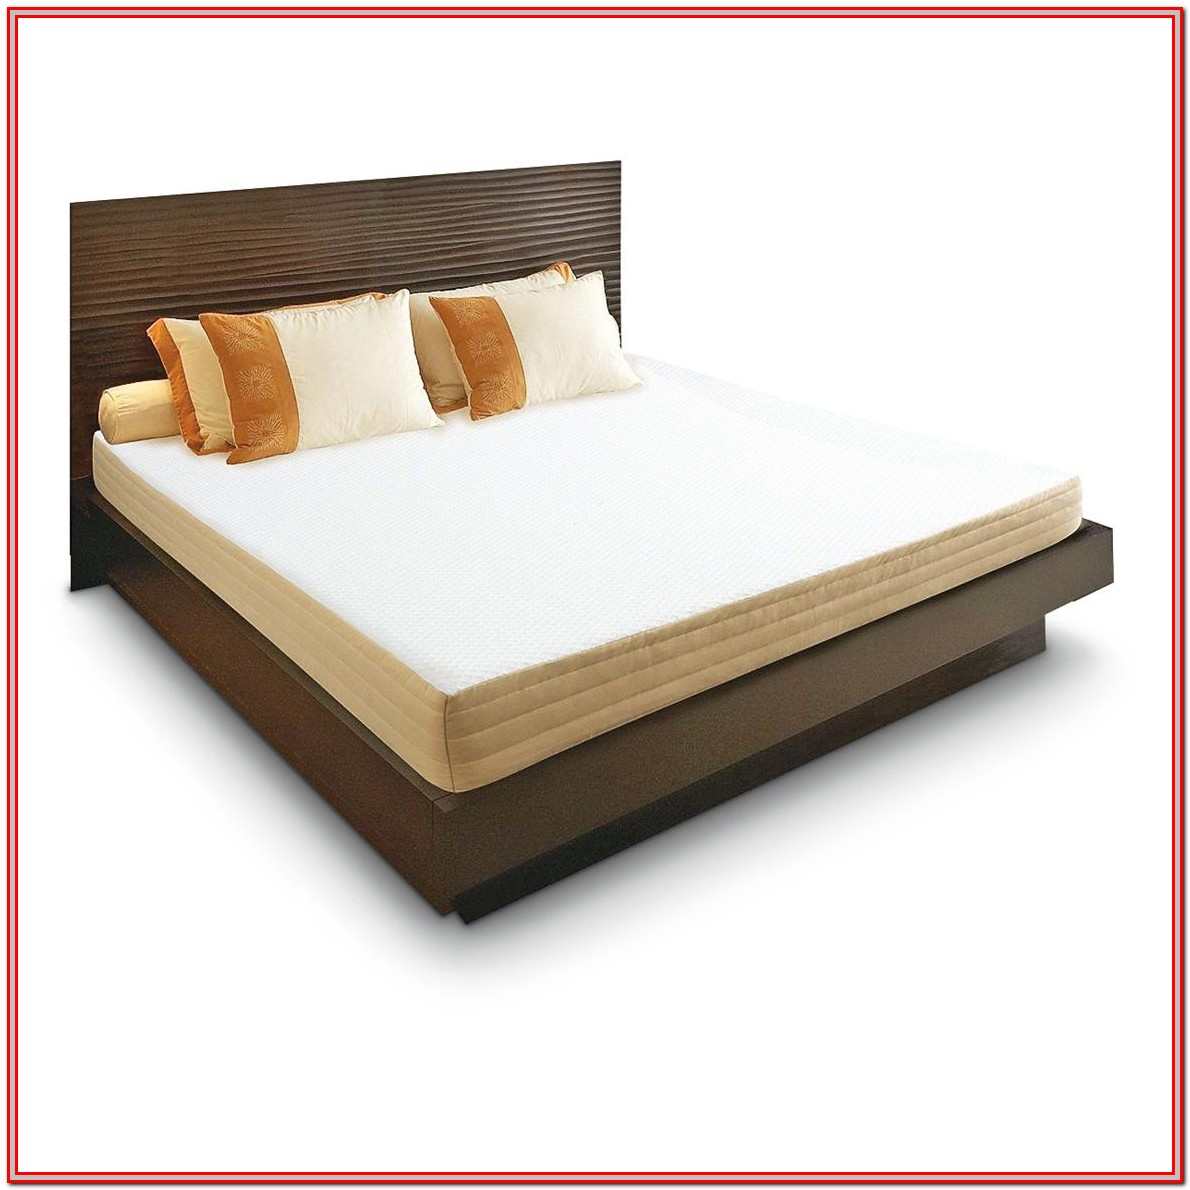 Memory Foam Mattress Bed Frame King